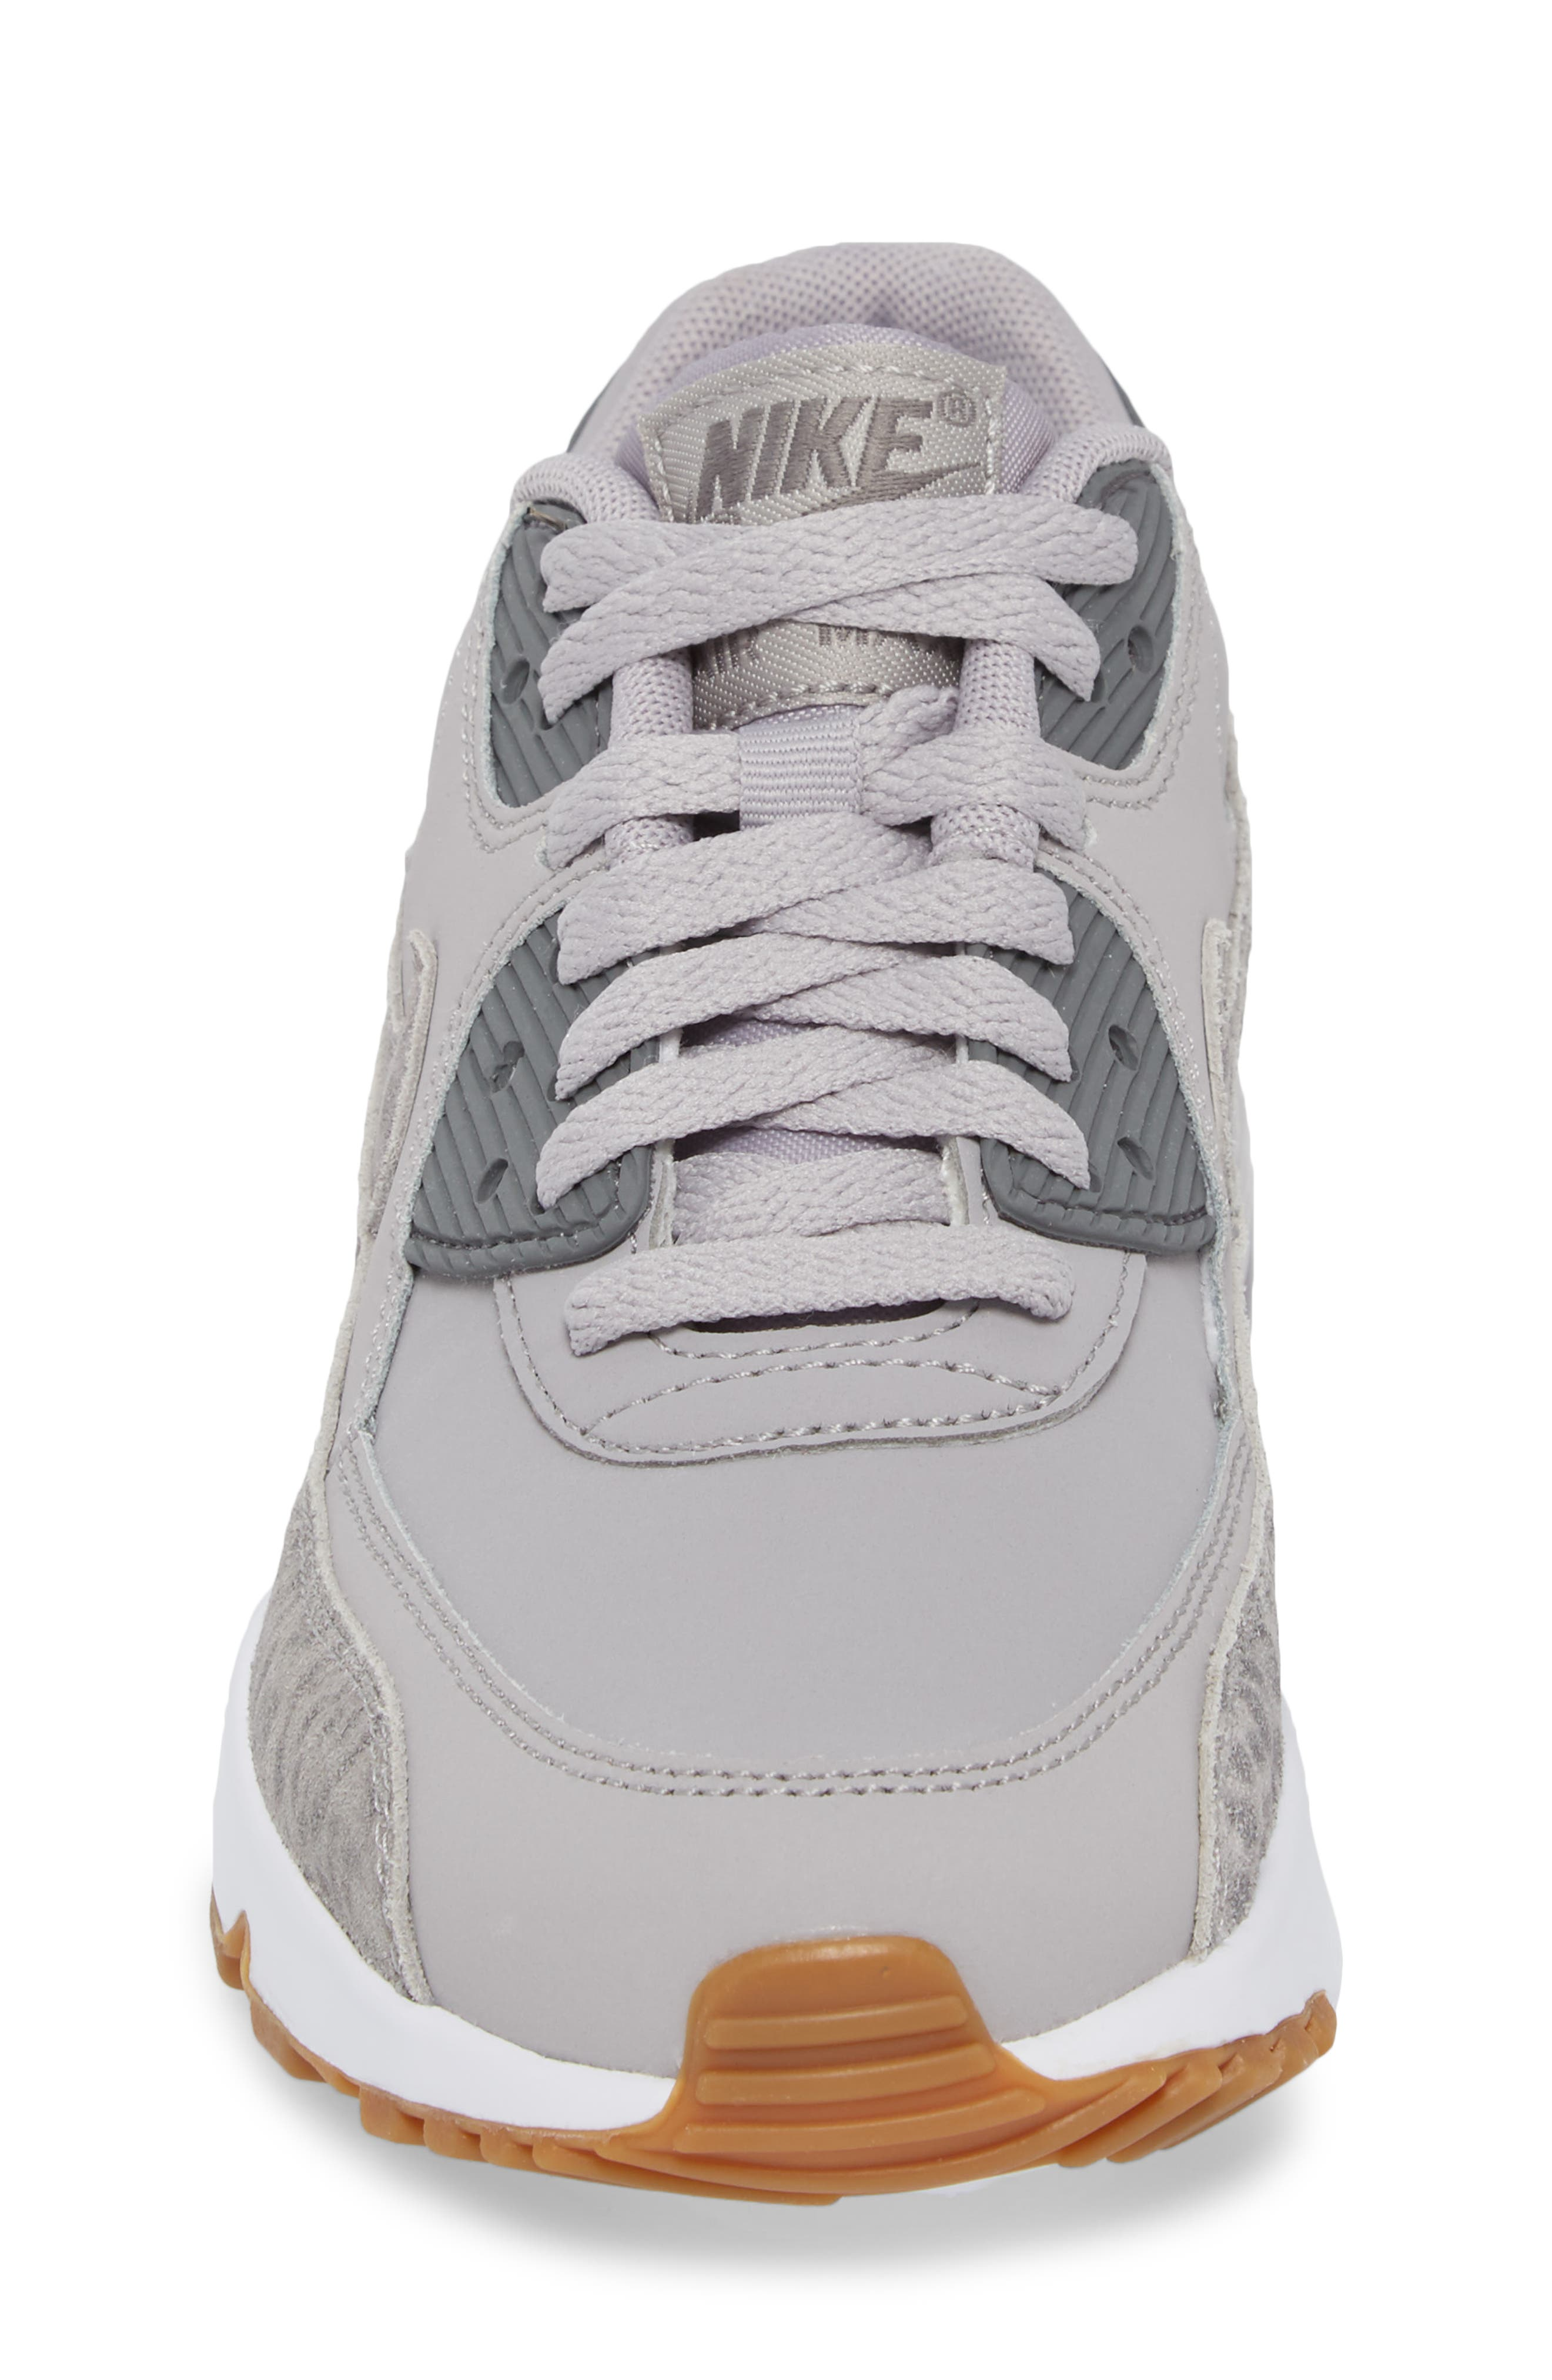 Air Max 90 Leather Sneaker,                             Alternate thumbnail 4, color,                             Atmosphere Grey/ Smoke/ White